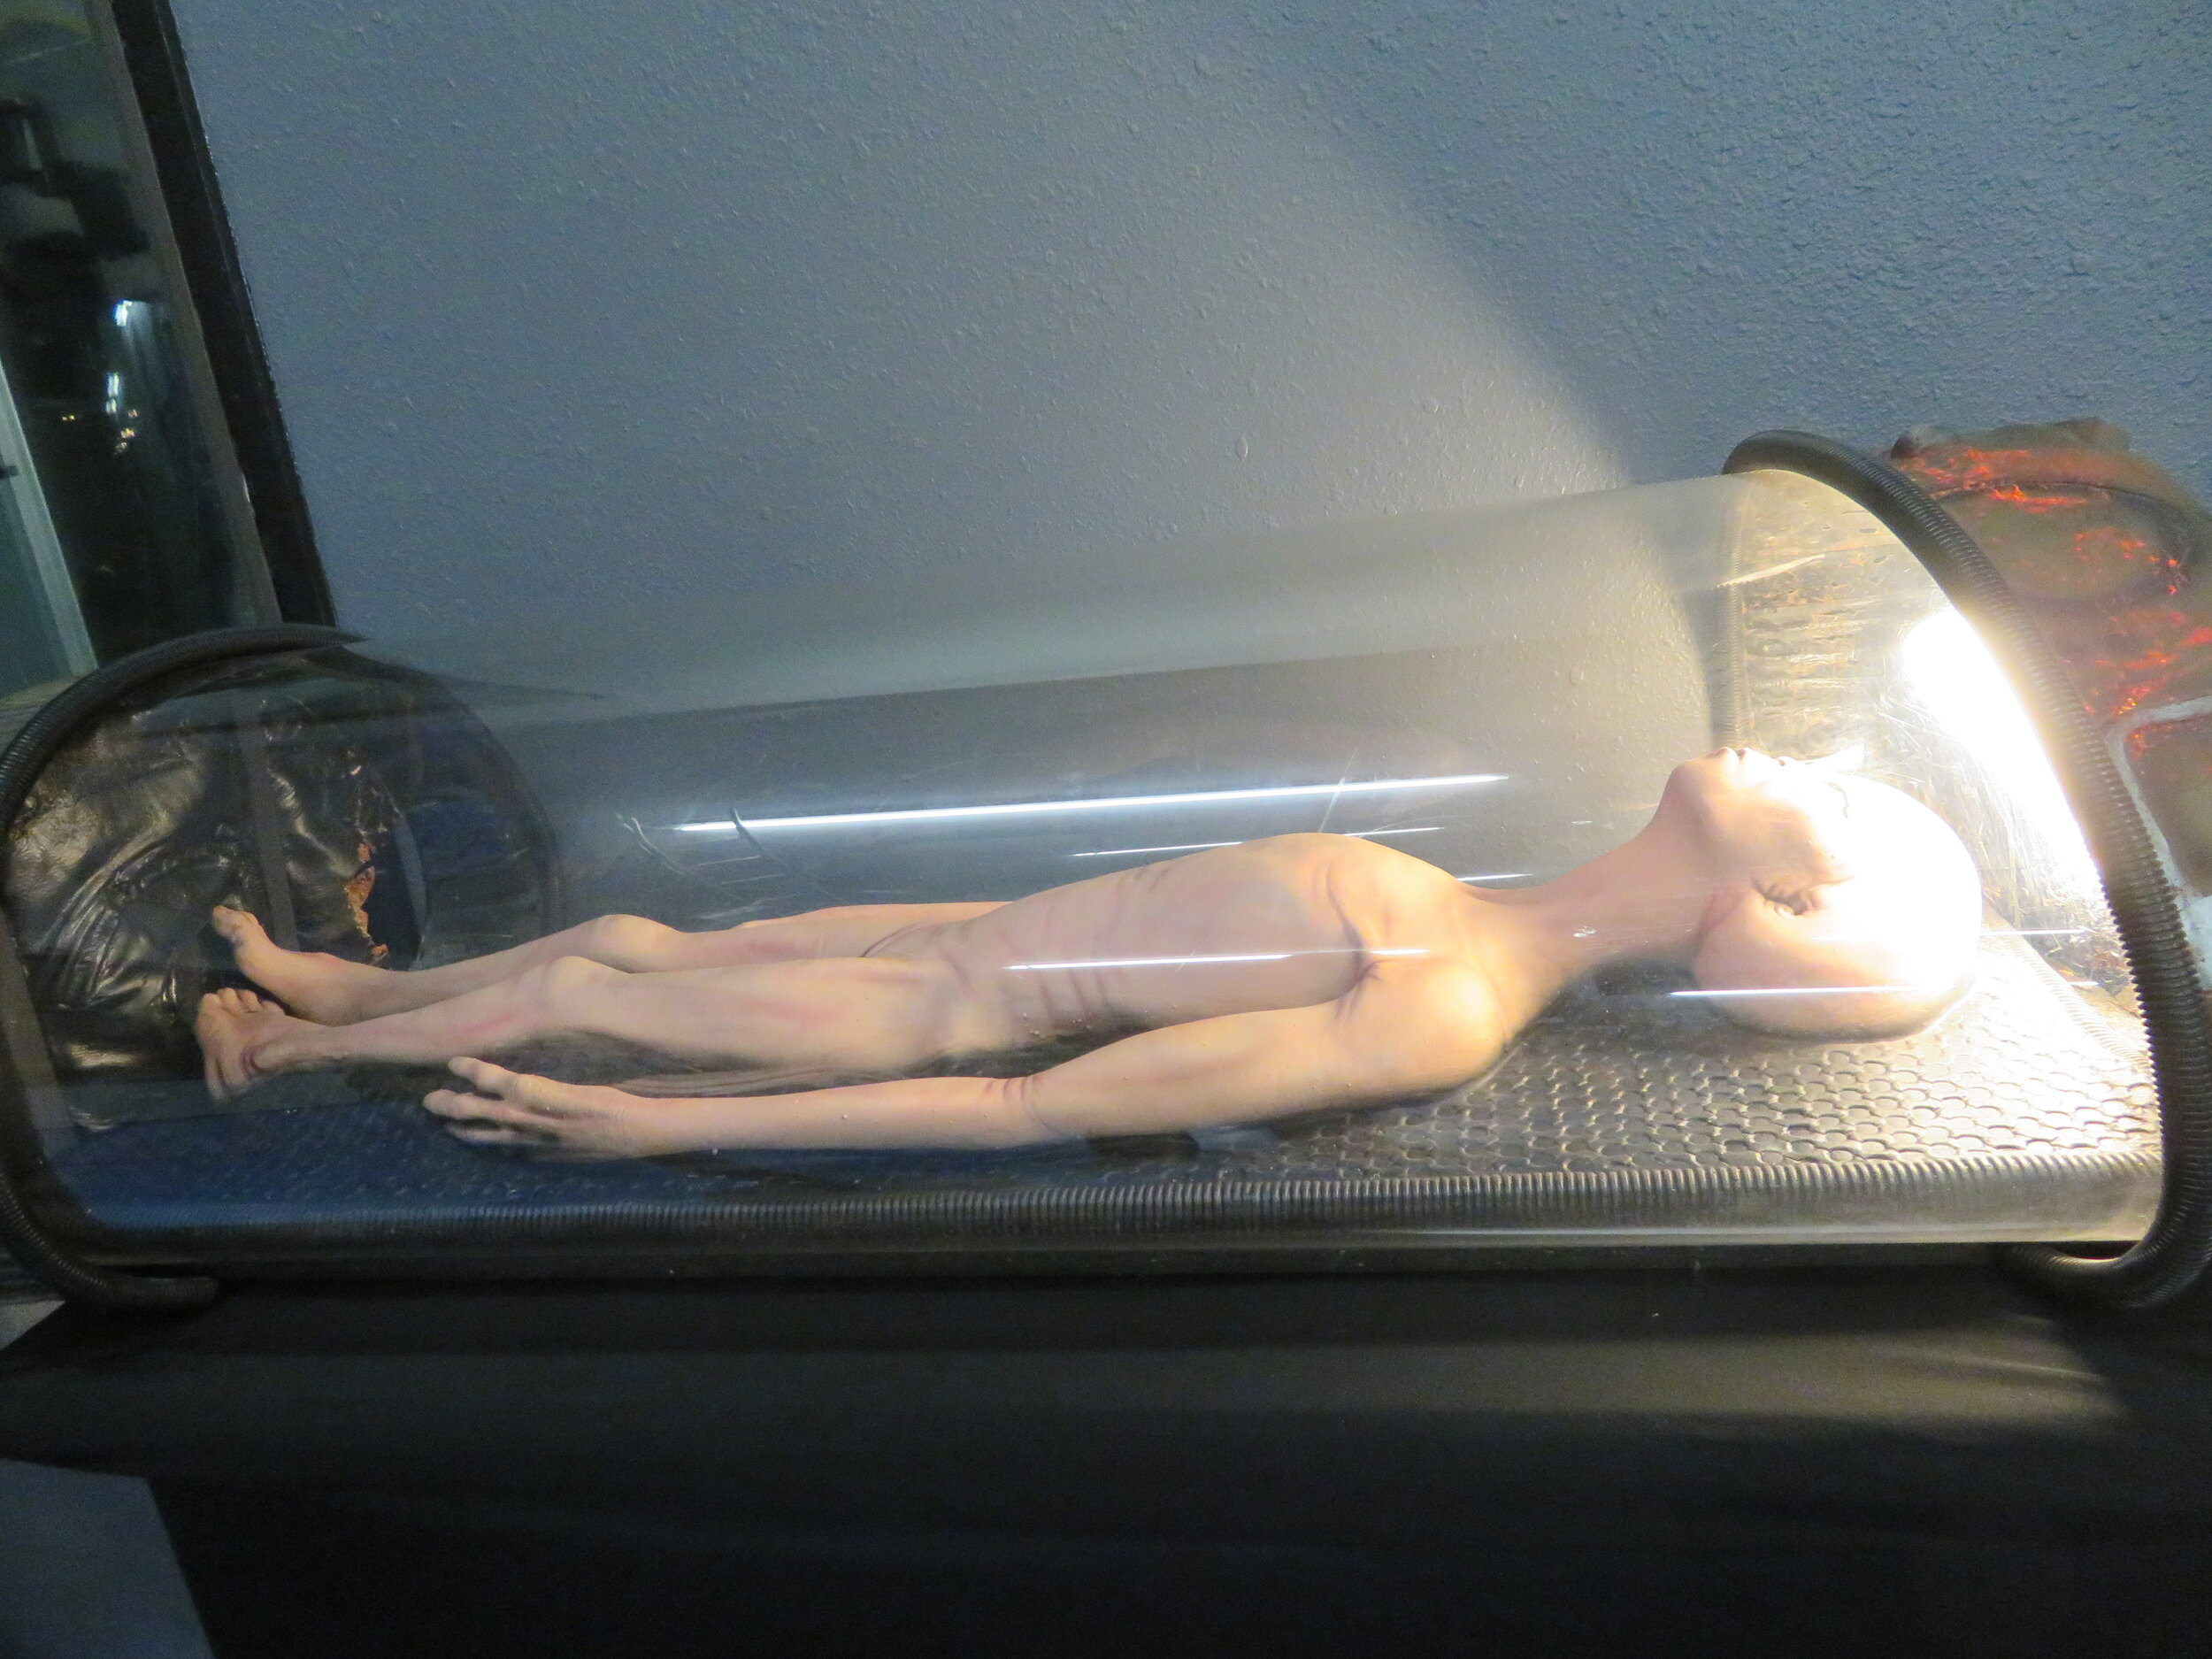 Replica of alien body